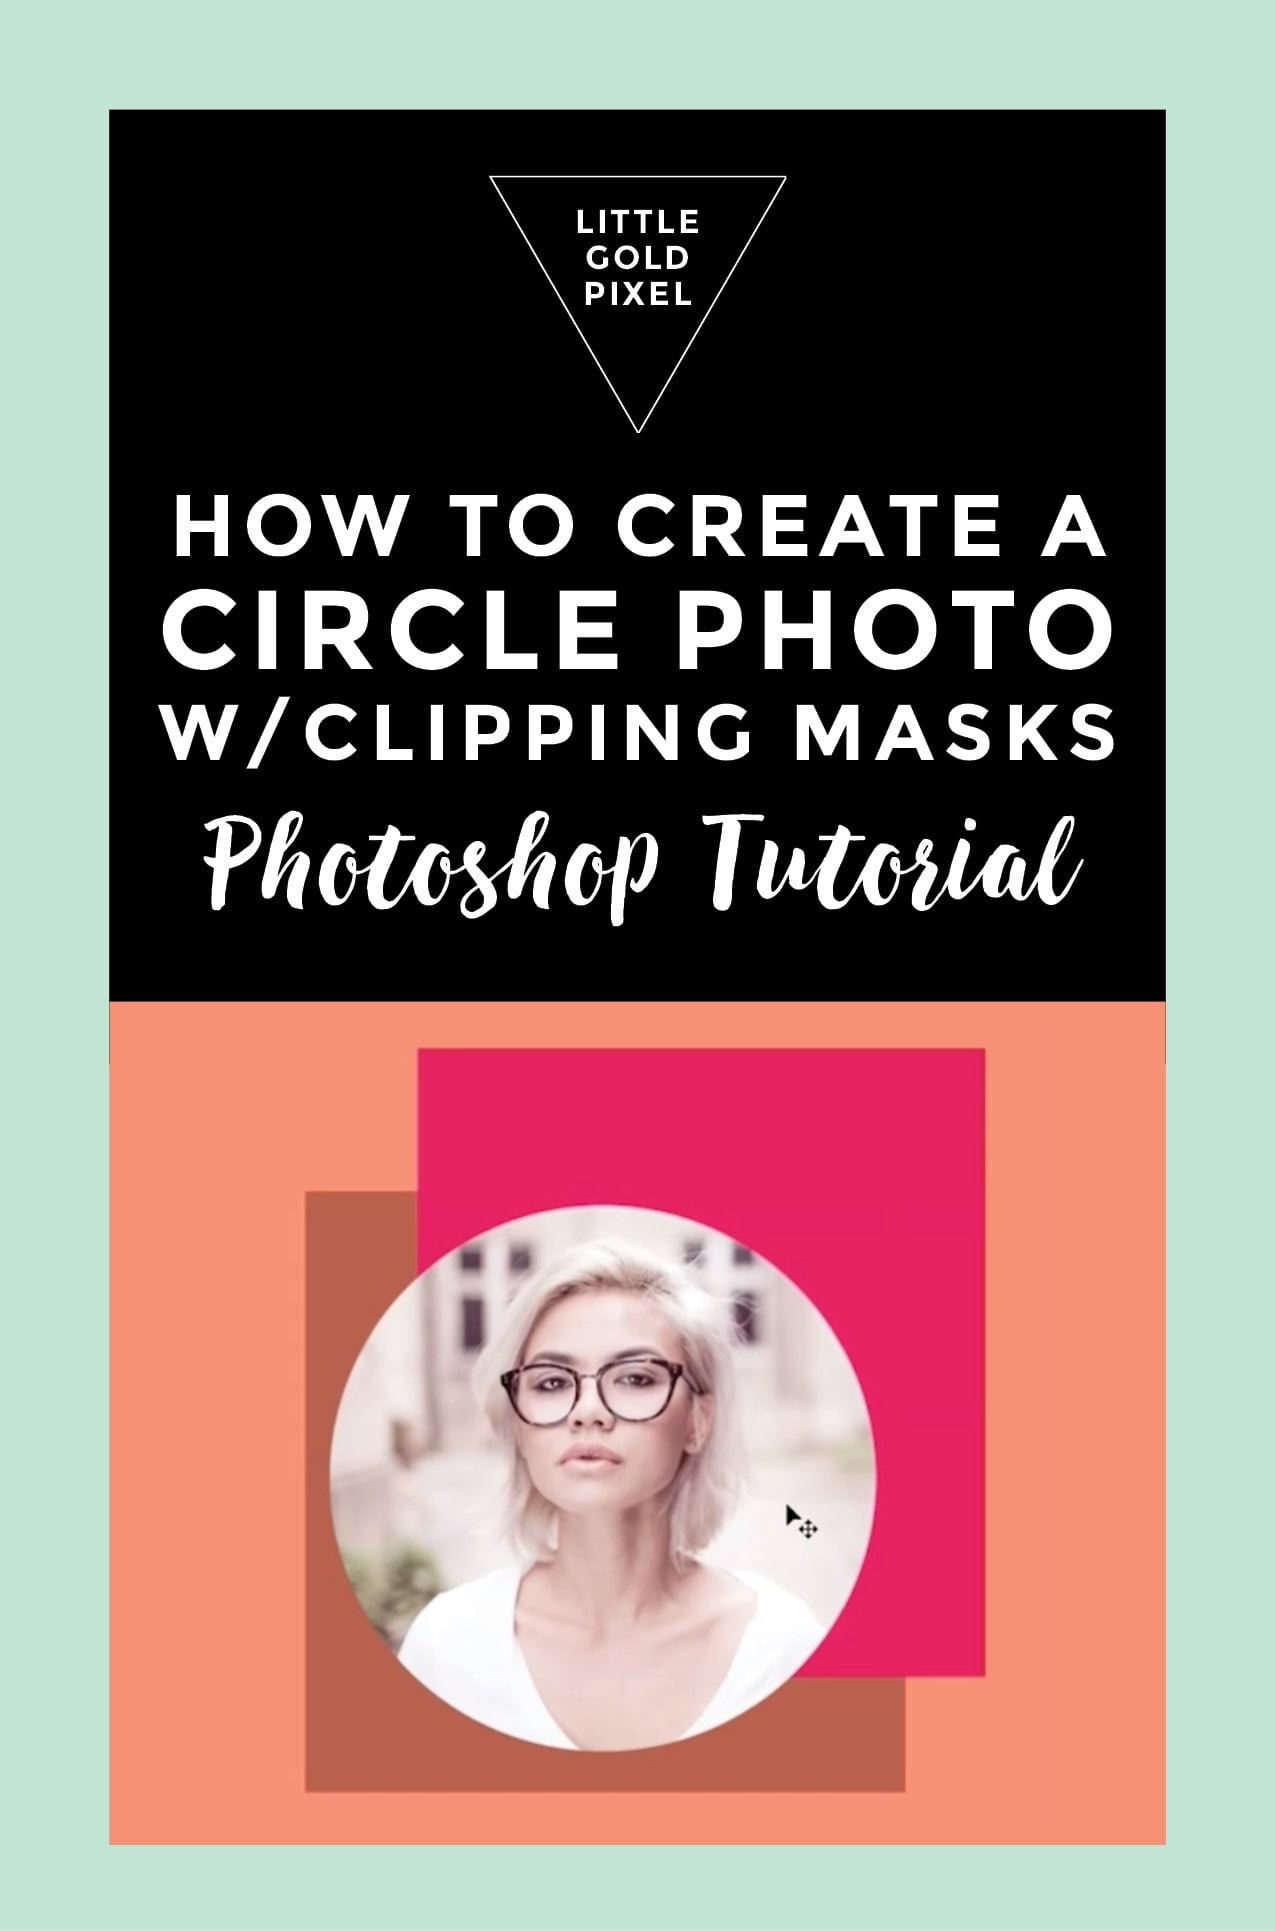 How to Create a Circle Photo Using Photoshop Clipping Masks • Little Gold Pixel